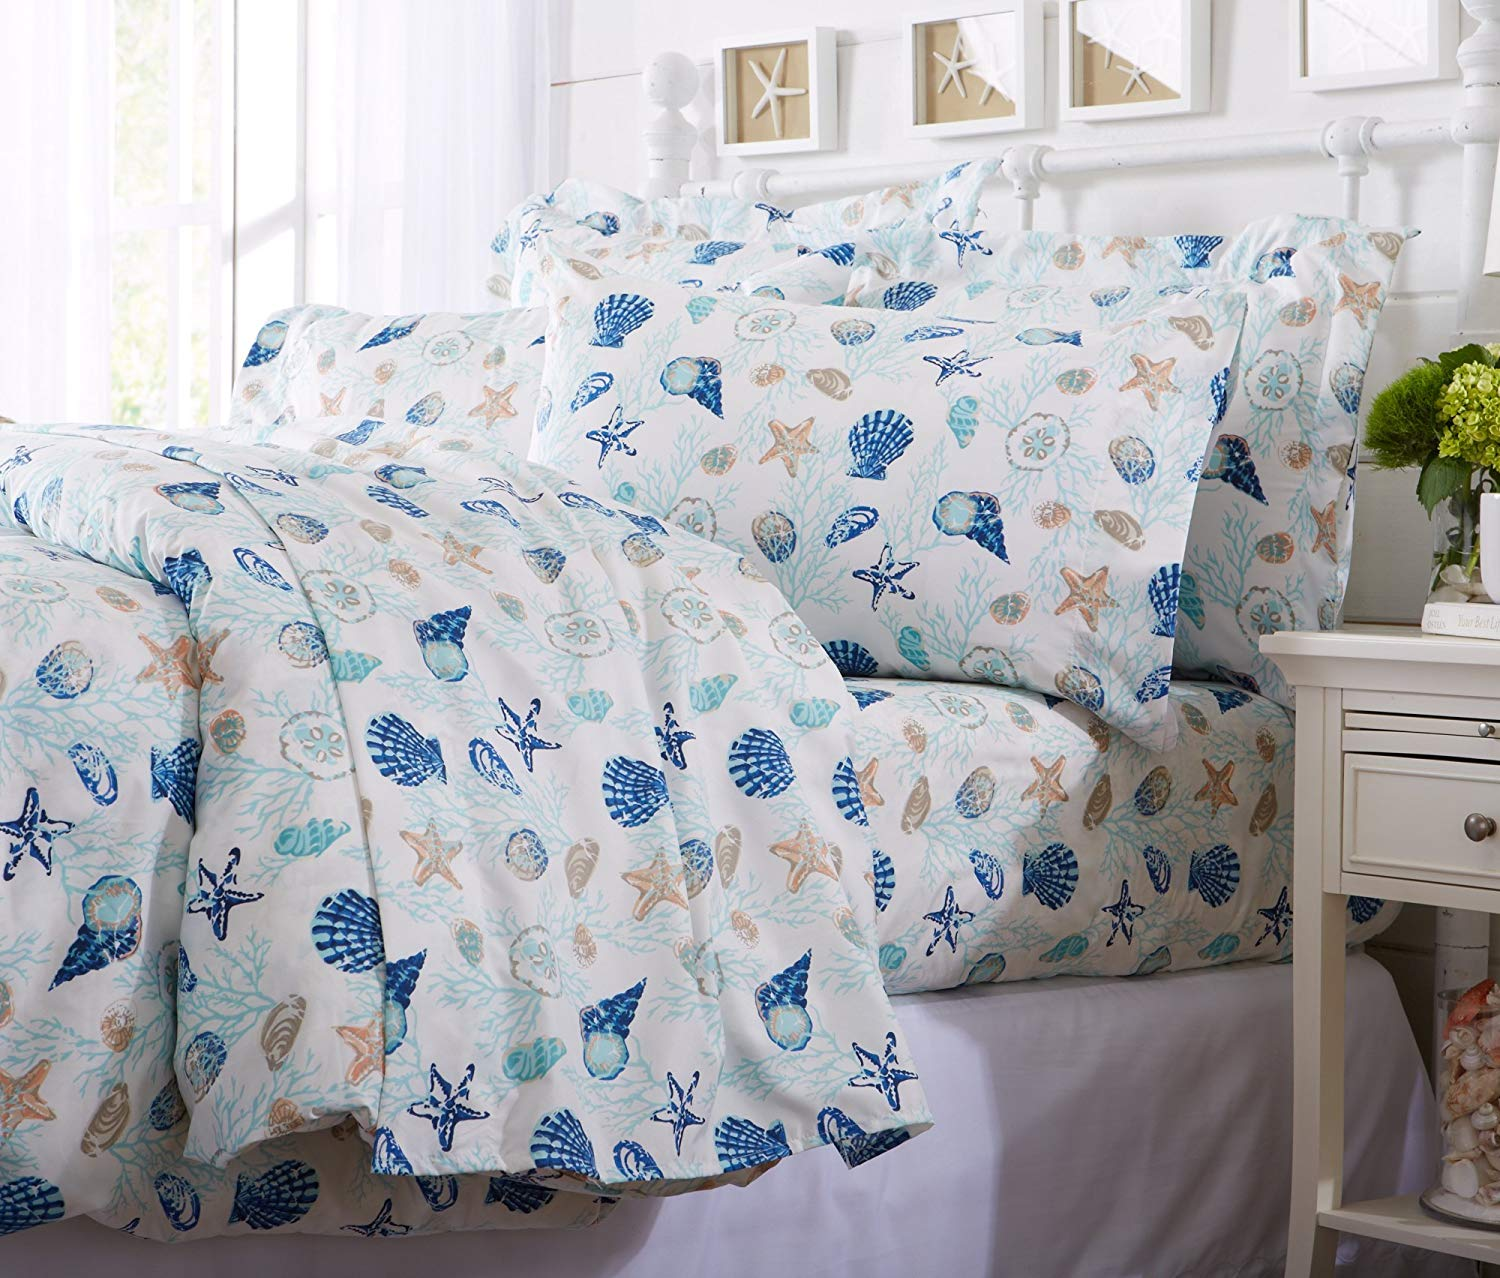 Image of Great Bay Home MIcrofiber Sheet Set - What Are Microfiber Sheets